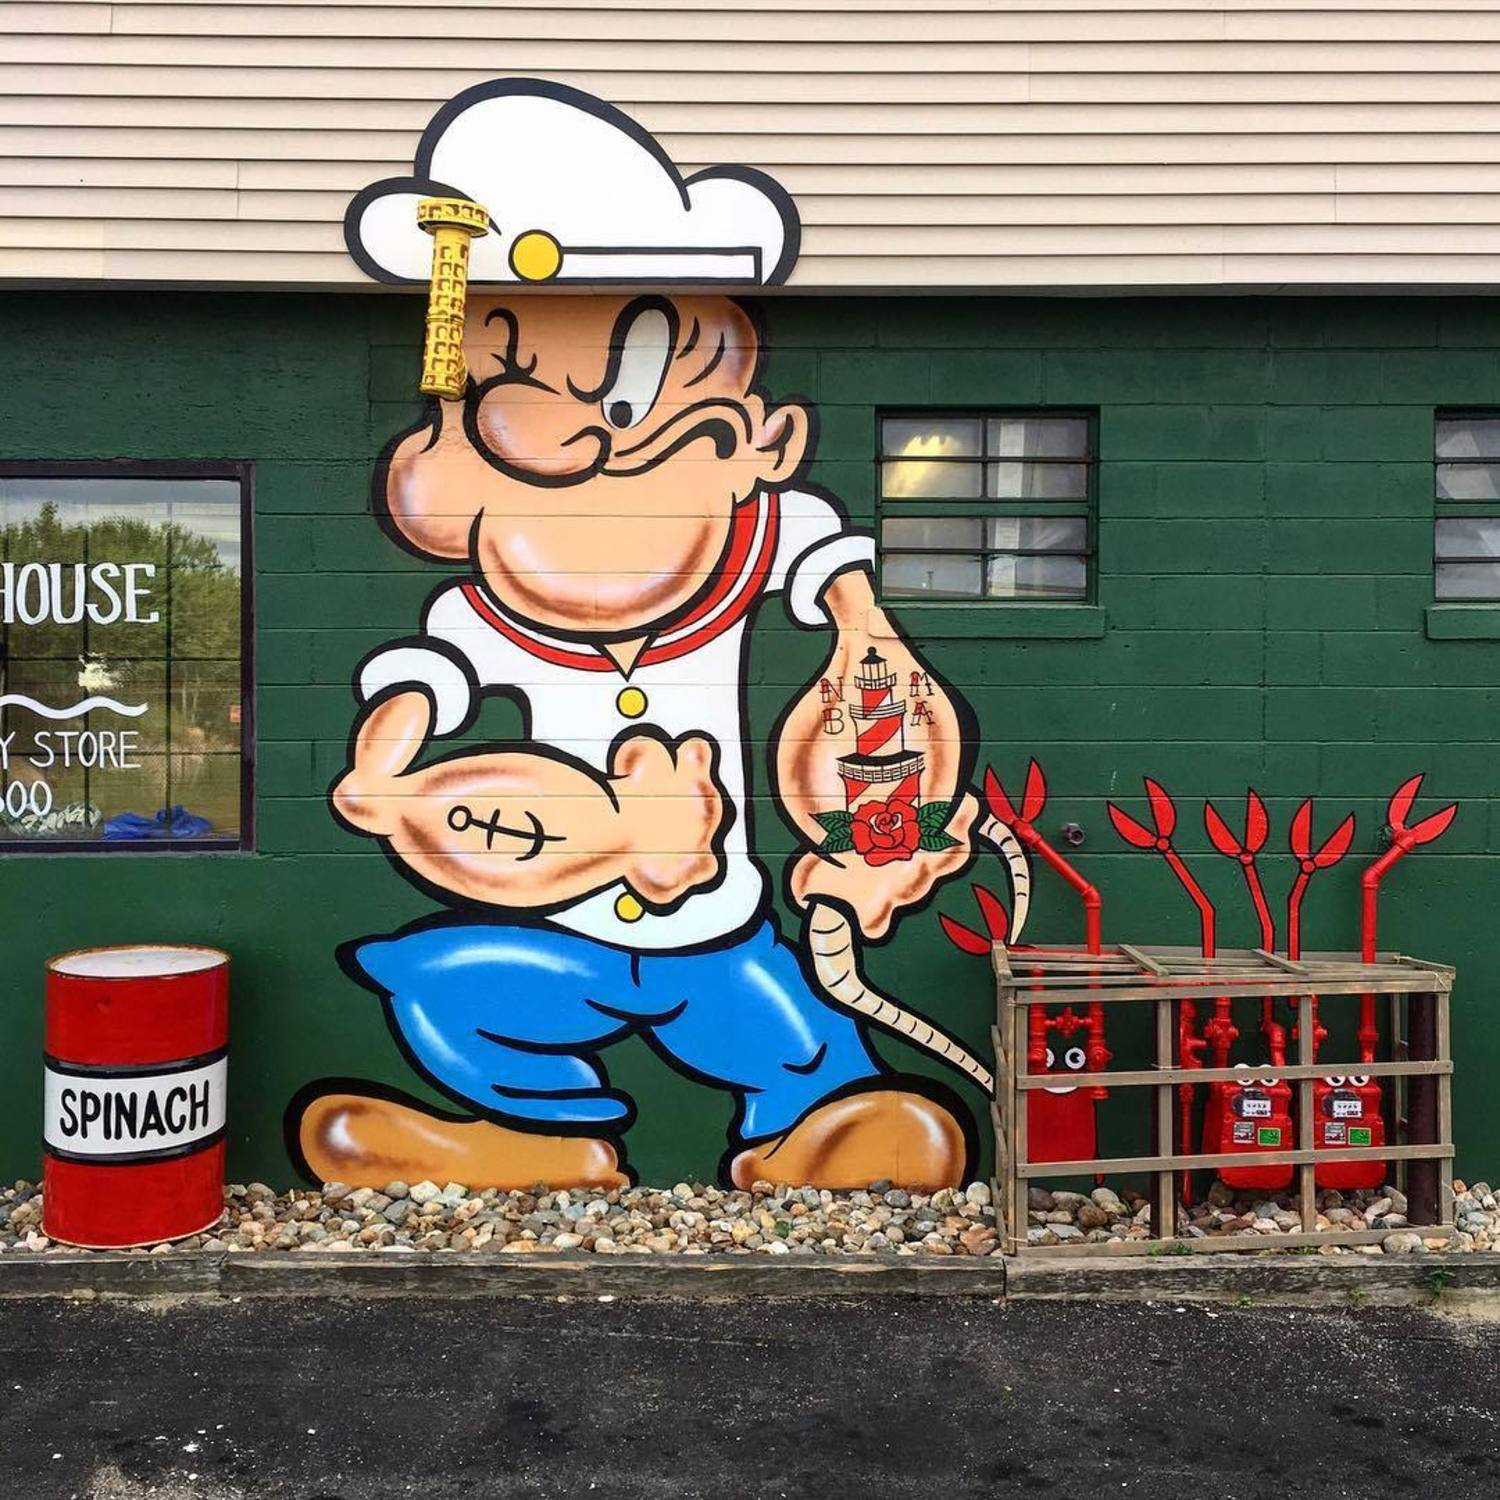 POPEYE #⚓️ hauling in the #lobsters #🦀🦀 #eyeballin #👀 #spinachcan #🌿#newbedford #🐳#massachusetts #streetart #tombobnyc #mural @lighthousesupply_nbma #popeye #💪🏼 #thesailorman #nbma #🐋 #popeyethesailorman #tombob #stencilart #oneyearago